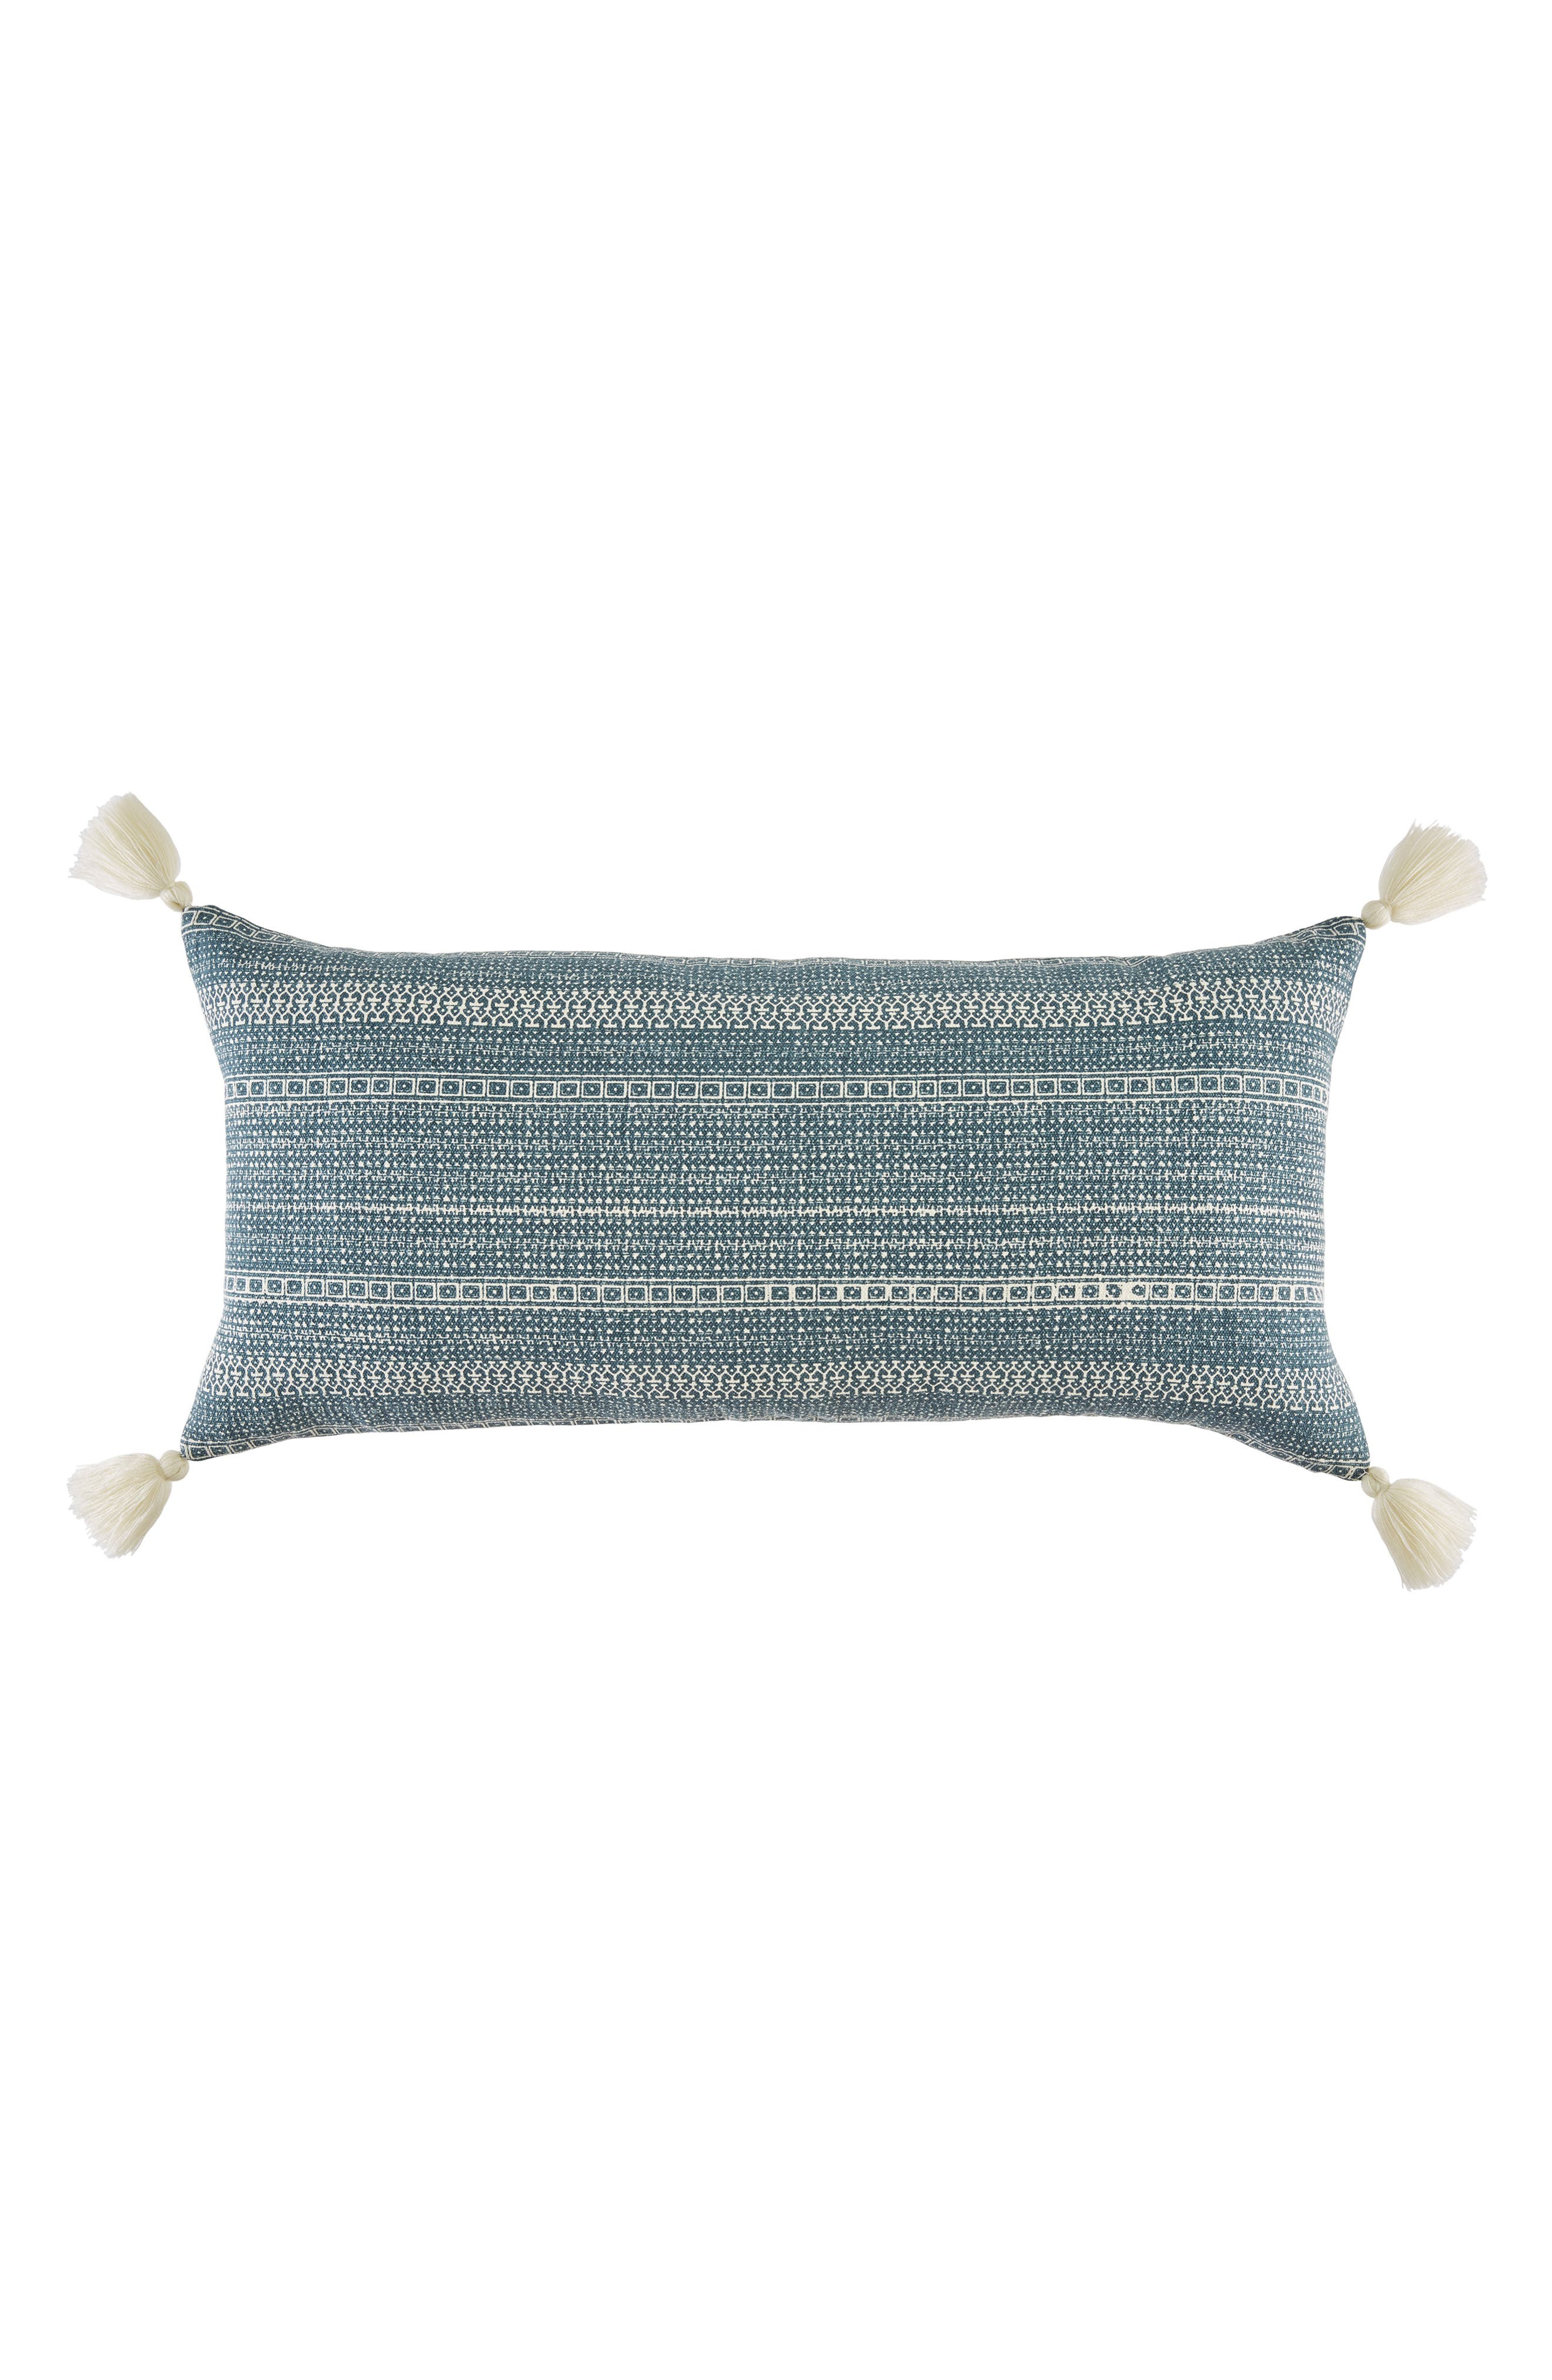 Sumi Accent Pillow,                         Main,                         color, Turquoise/ Aqua